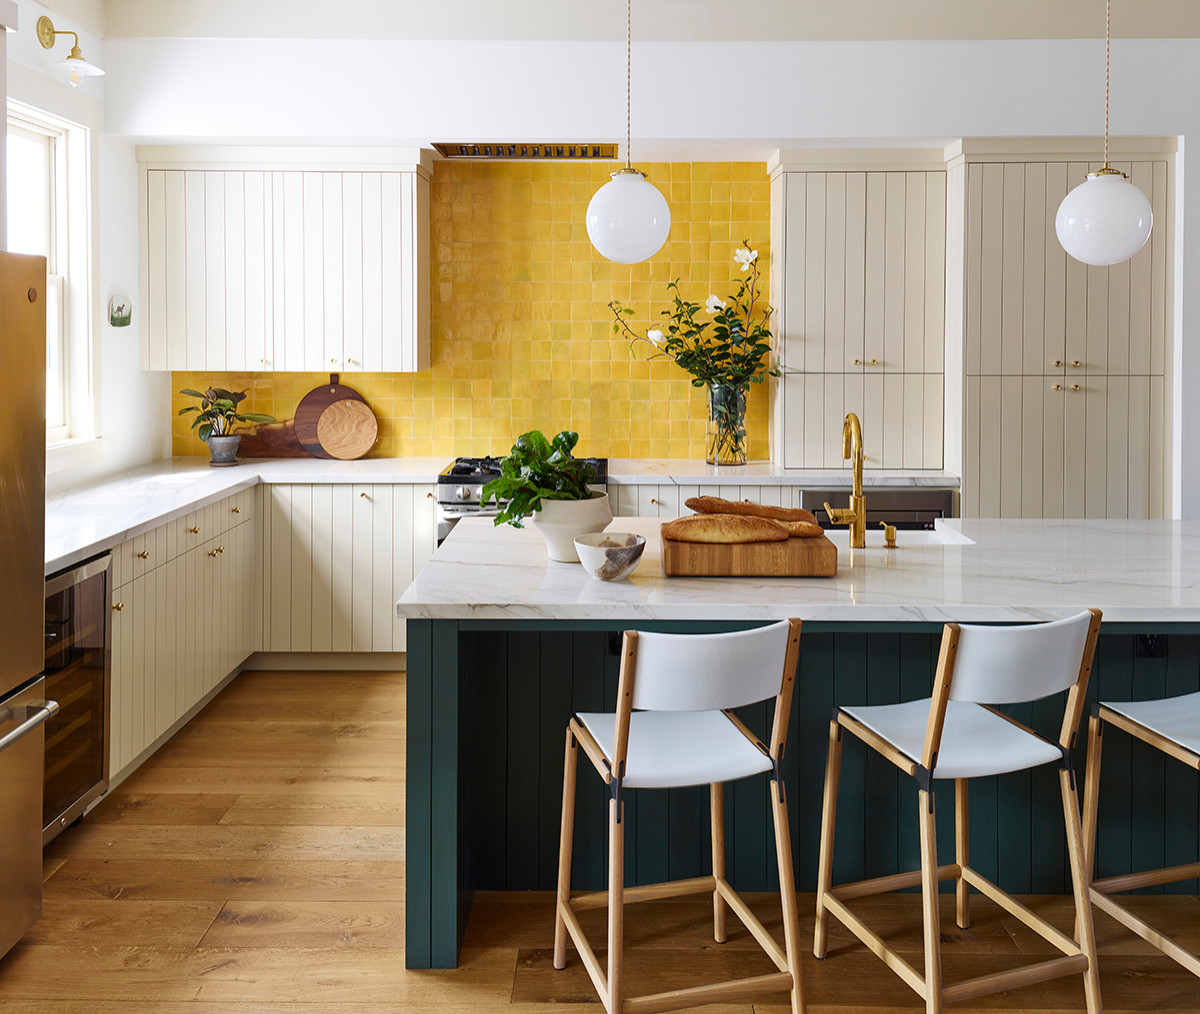 Kitchen island brings deep dark green to the kitchen while the backsplash pours in yellow